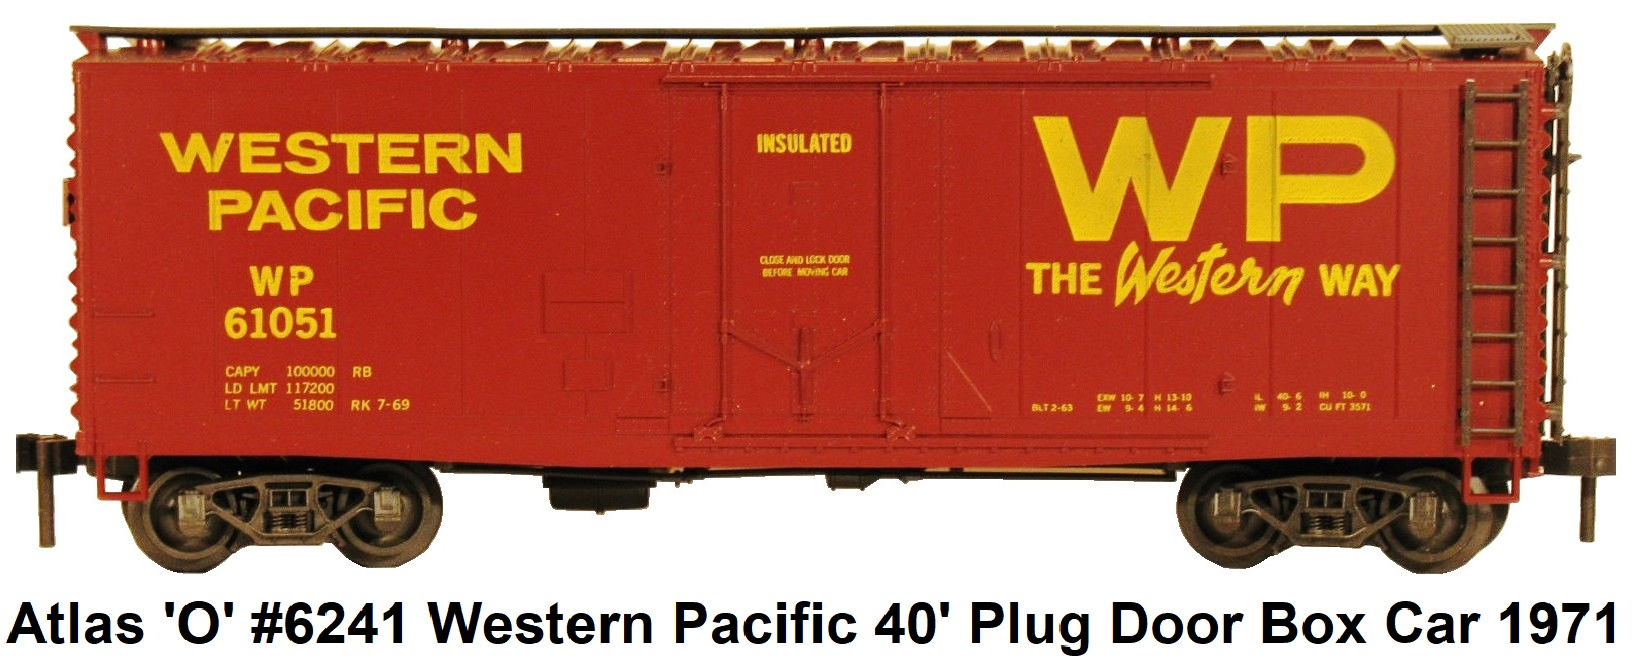 Atlas 'O' Scale #6241 Western Pacific 40' insulated plug door box car circa 1971